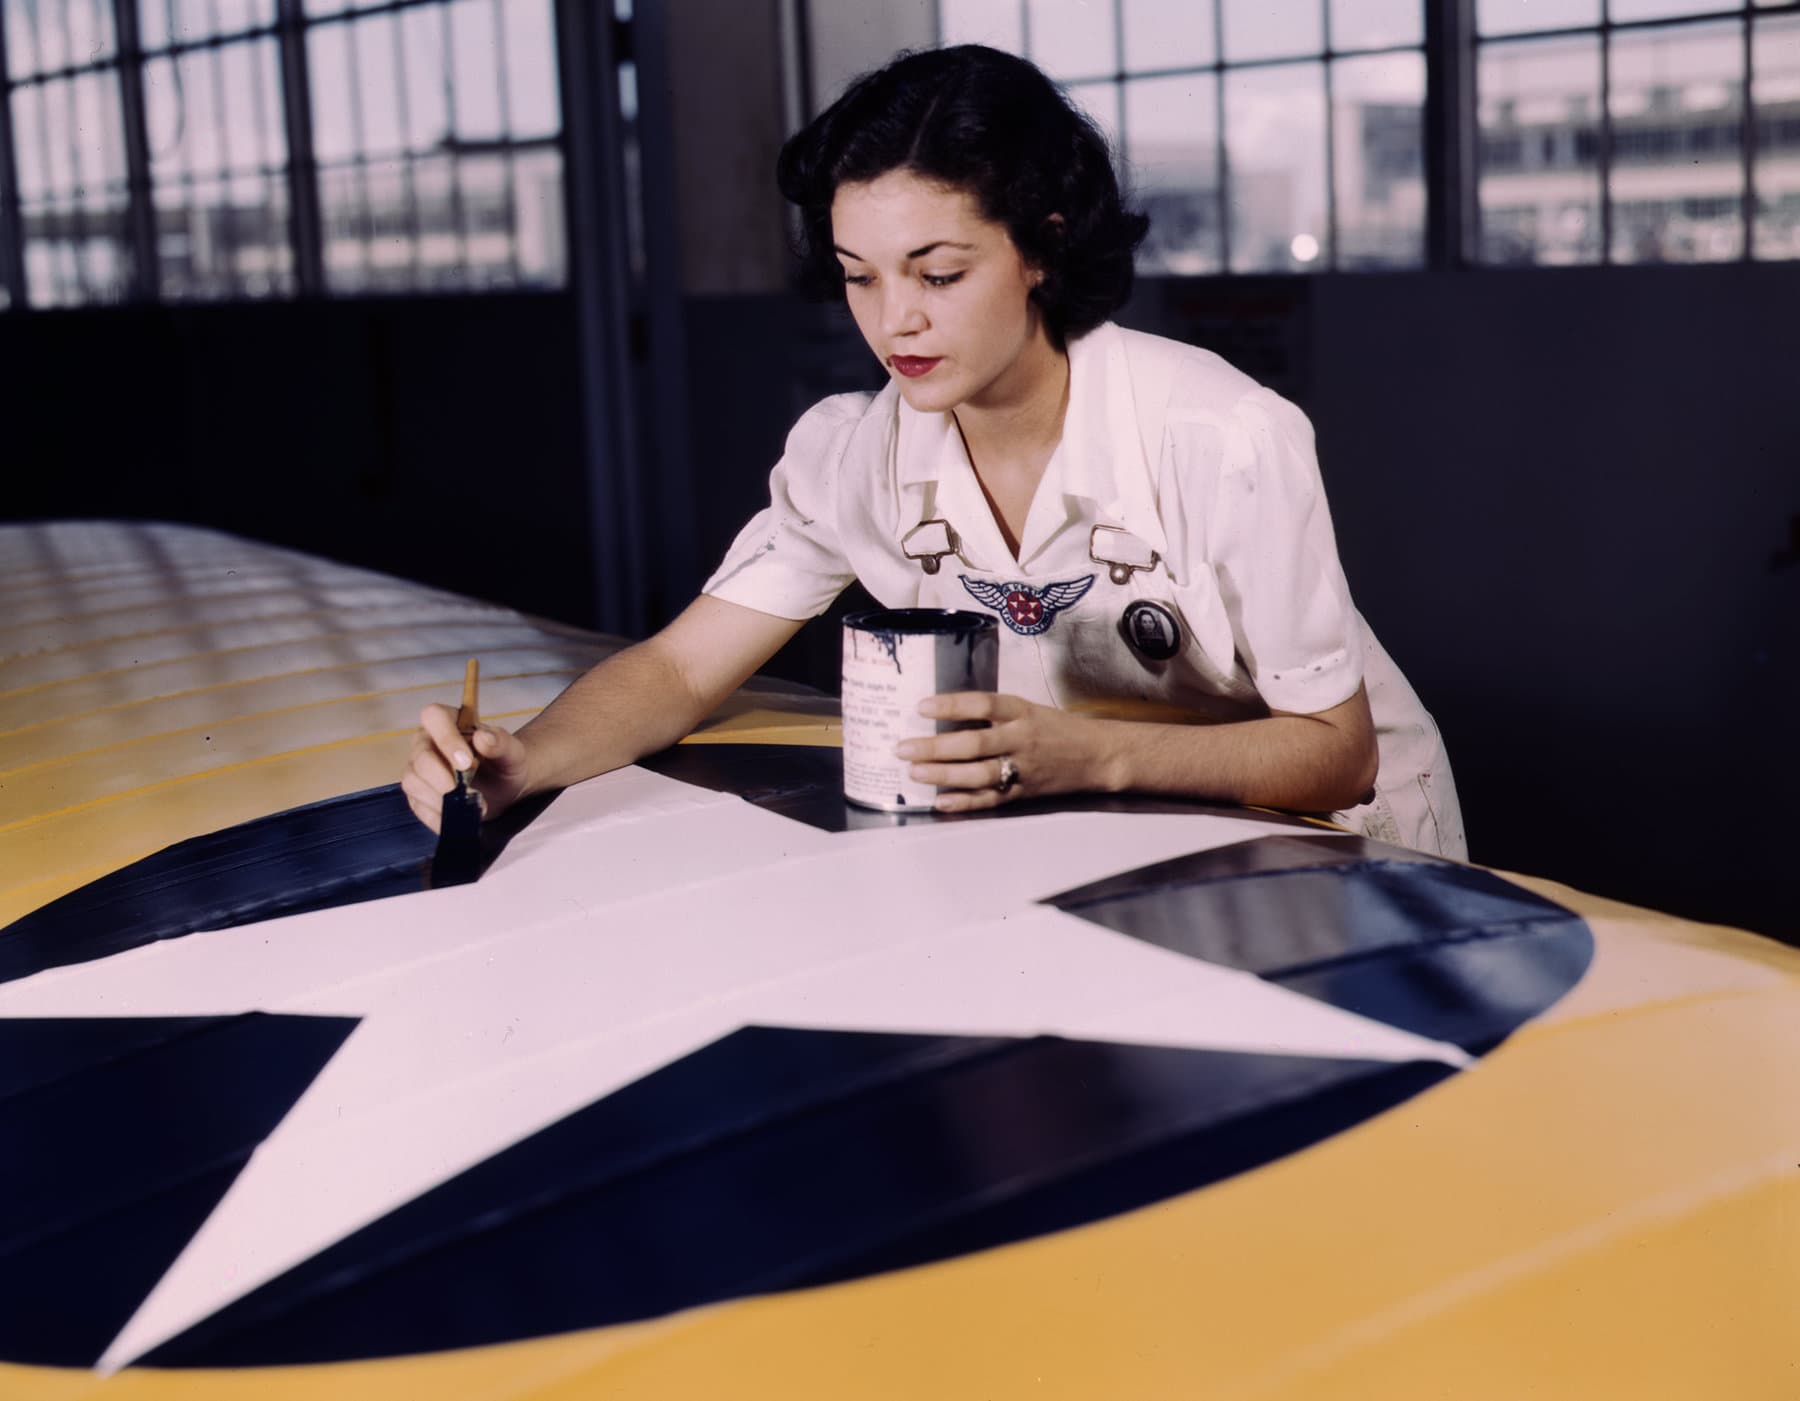 Building WWII planes - Painting the American insignia on wing